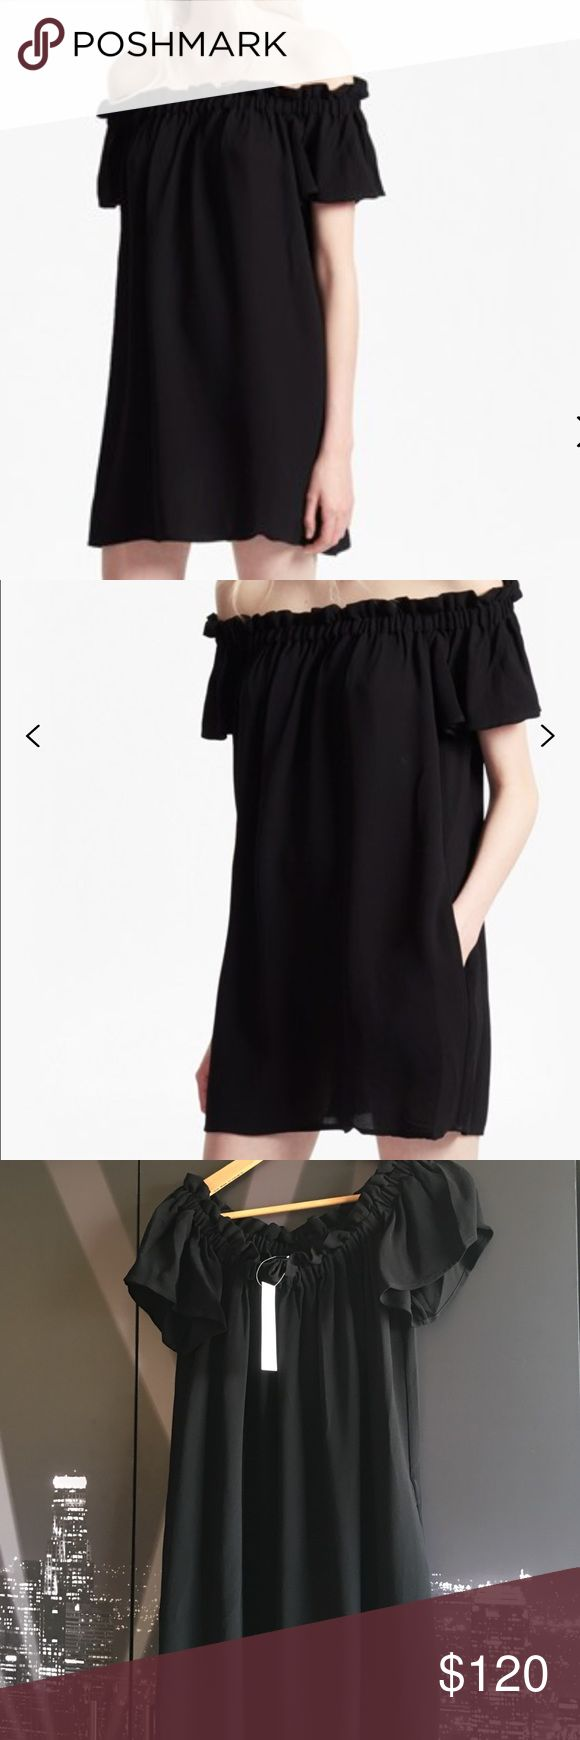 French Connection Ruffle Dress French Connection oversized Evening Dew Bardot dress makes the shift between day and night utterly seamless. It has fluted angel sleeves with a ruffle-trimmed neckline to add some femininity, while  the rest remains simple, allowing for plenty of style. Perfect to wear in the day with black suede ankle boots or in the evening, wear with 2 strap heels. French Connection Dresses Mini